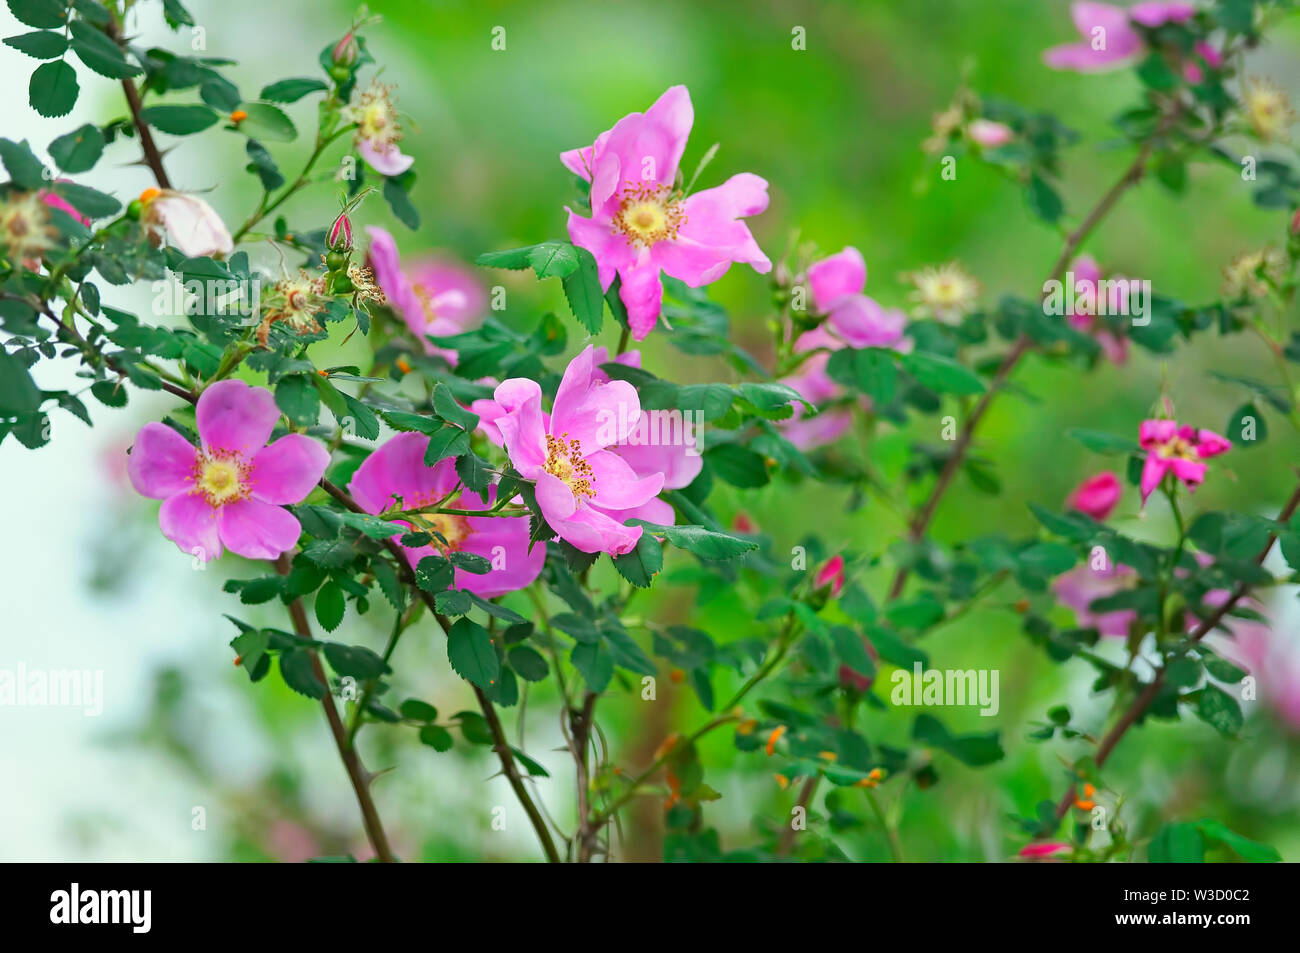 A wild Nootka rose bush (Rosa nutkana) named after an island off Vancouver, Canada named Nootka. Stock Photo